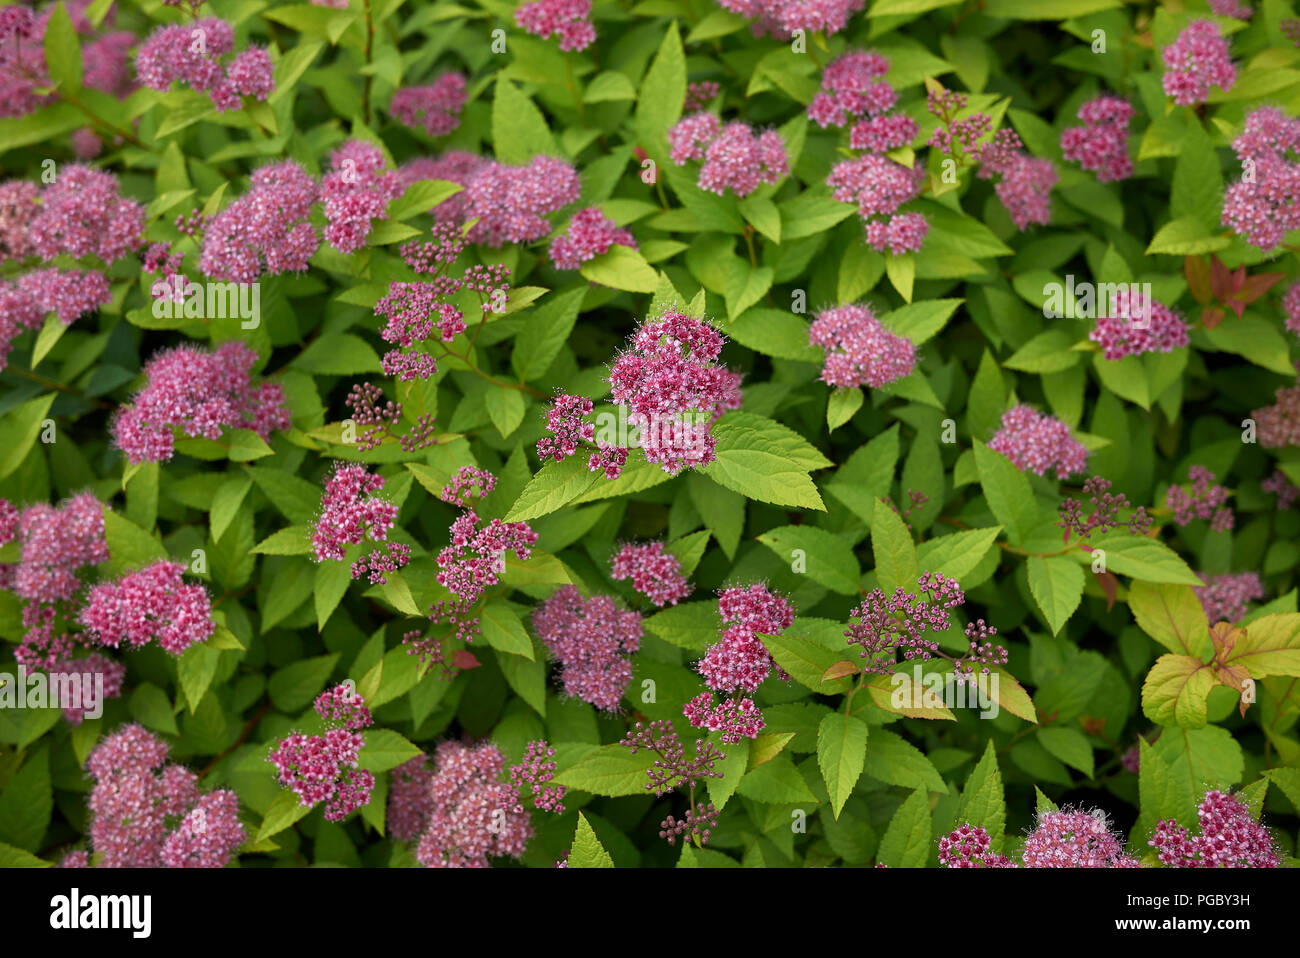 Spiraea Bumalda Banque D Images Photo Stock 216621653 Alamy